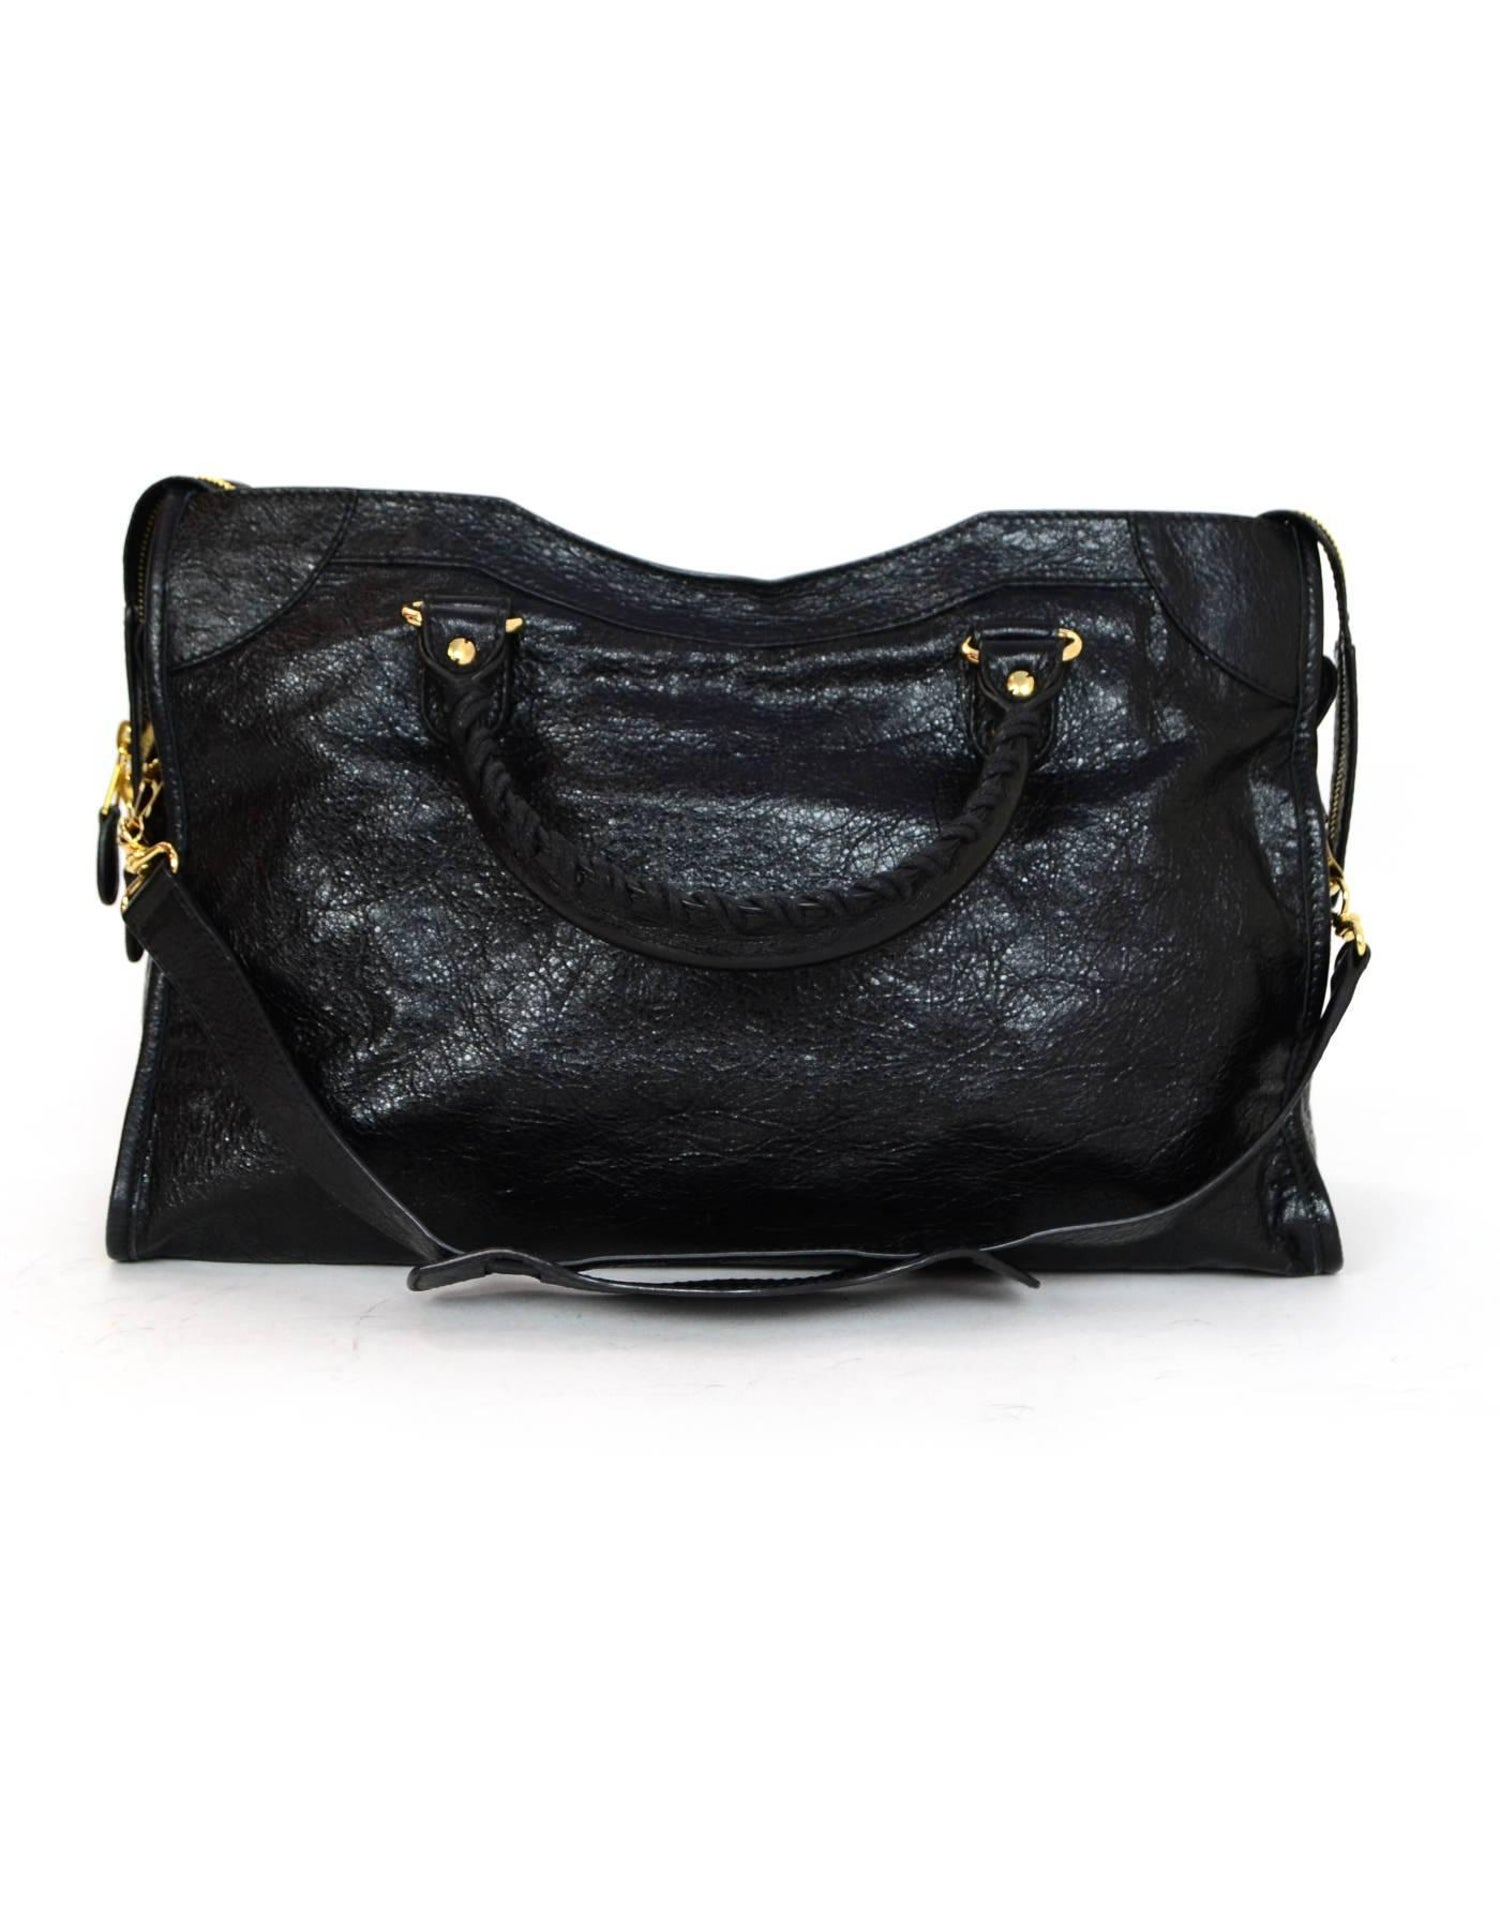 1d8d6c5437 Balenciaga Black Distressed Leather Giant 12 City Moto Satchel Bag For Sale  at 1stdibs